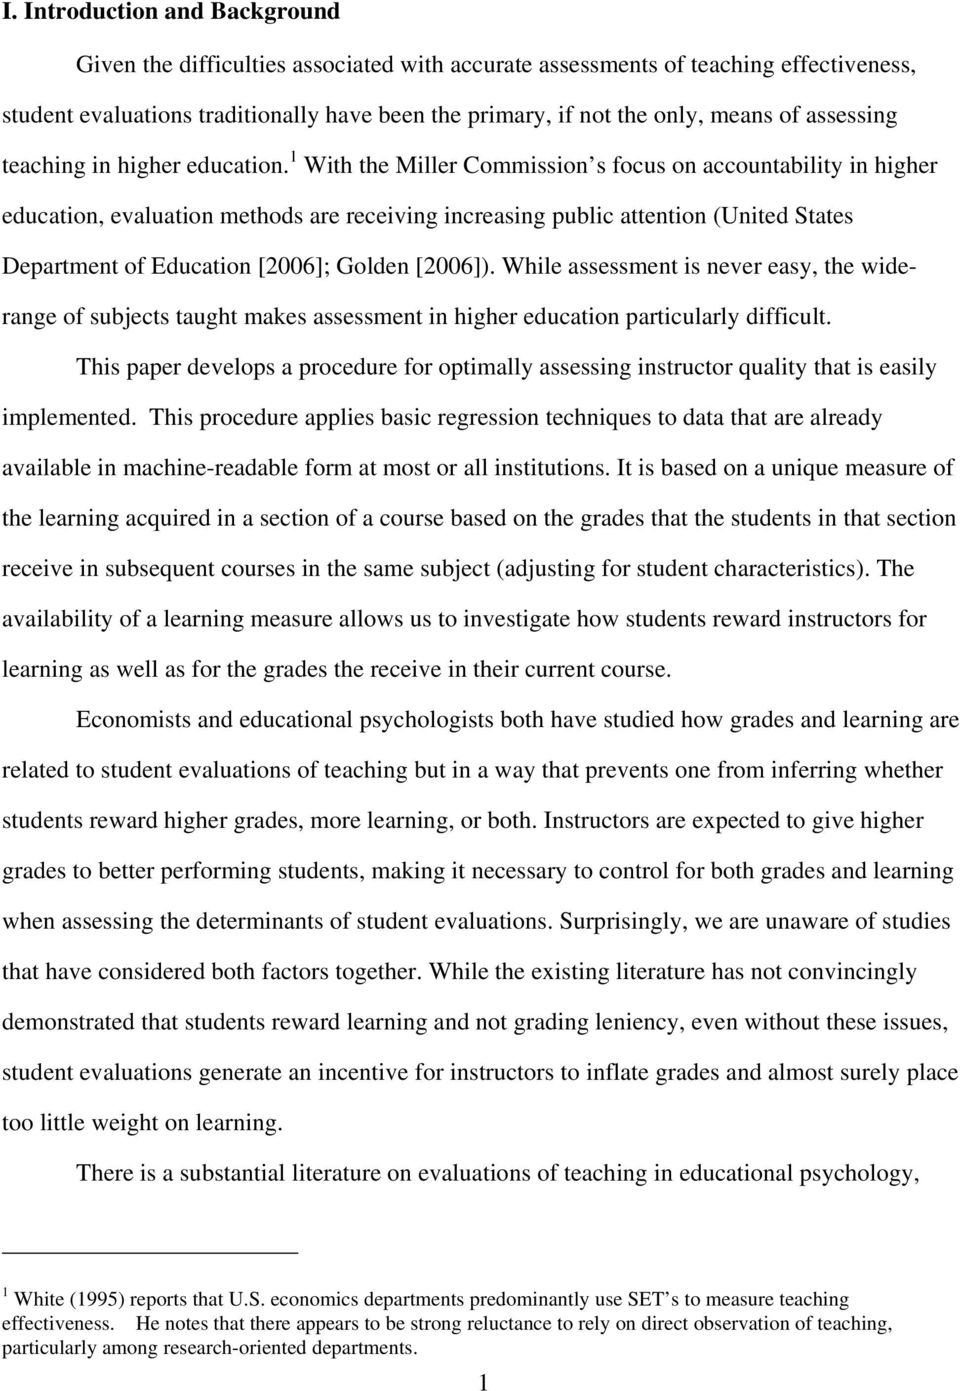 1 With the Miller Commiion focu on accountability in higher education, evaluation method are receiving increaing public attention (United State Department of Education [2006]; Golden [2006]).